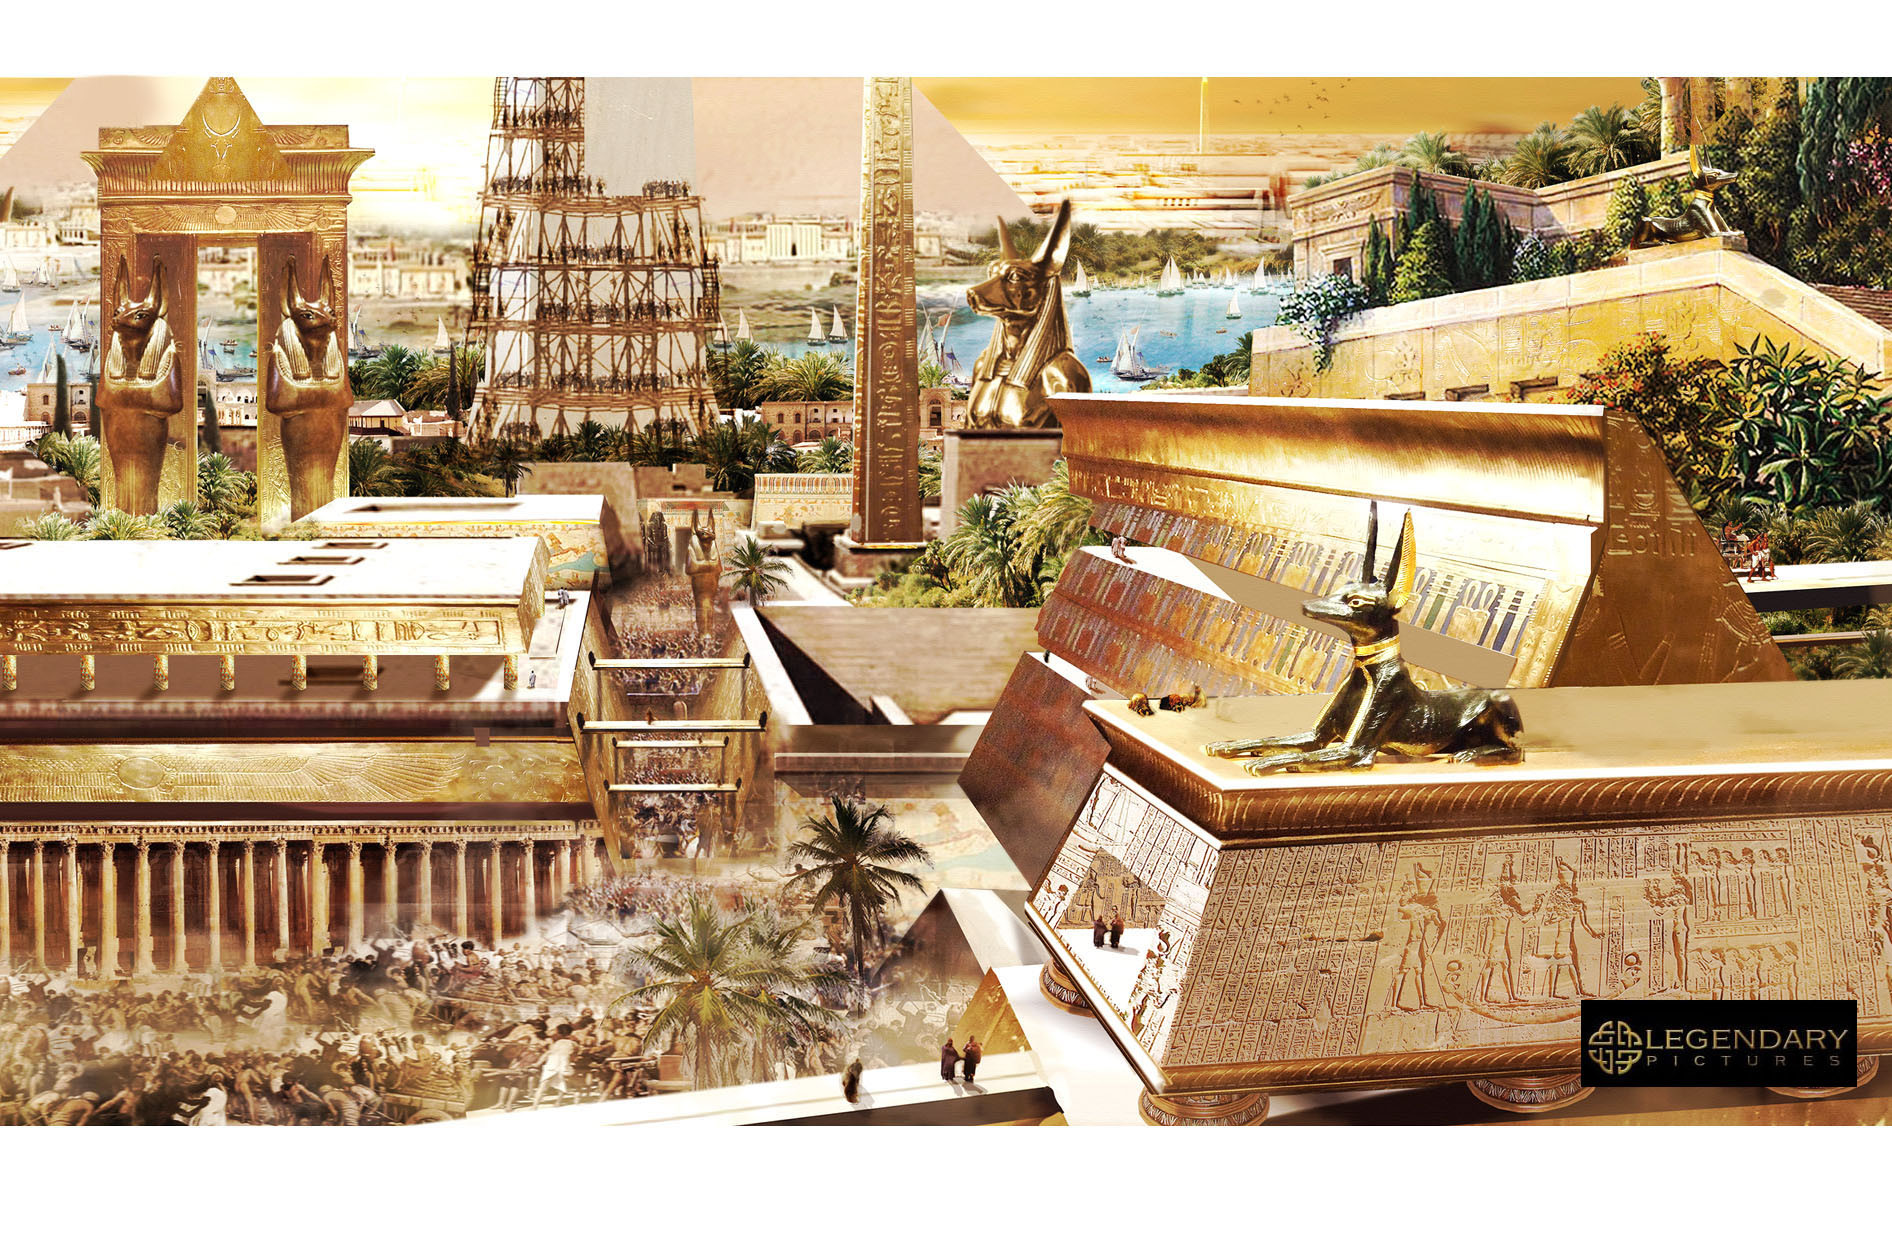 Large scene setting image from the movie Gods of Egypt.